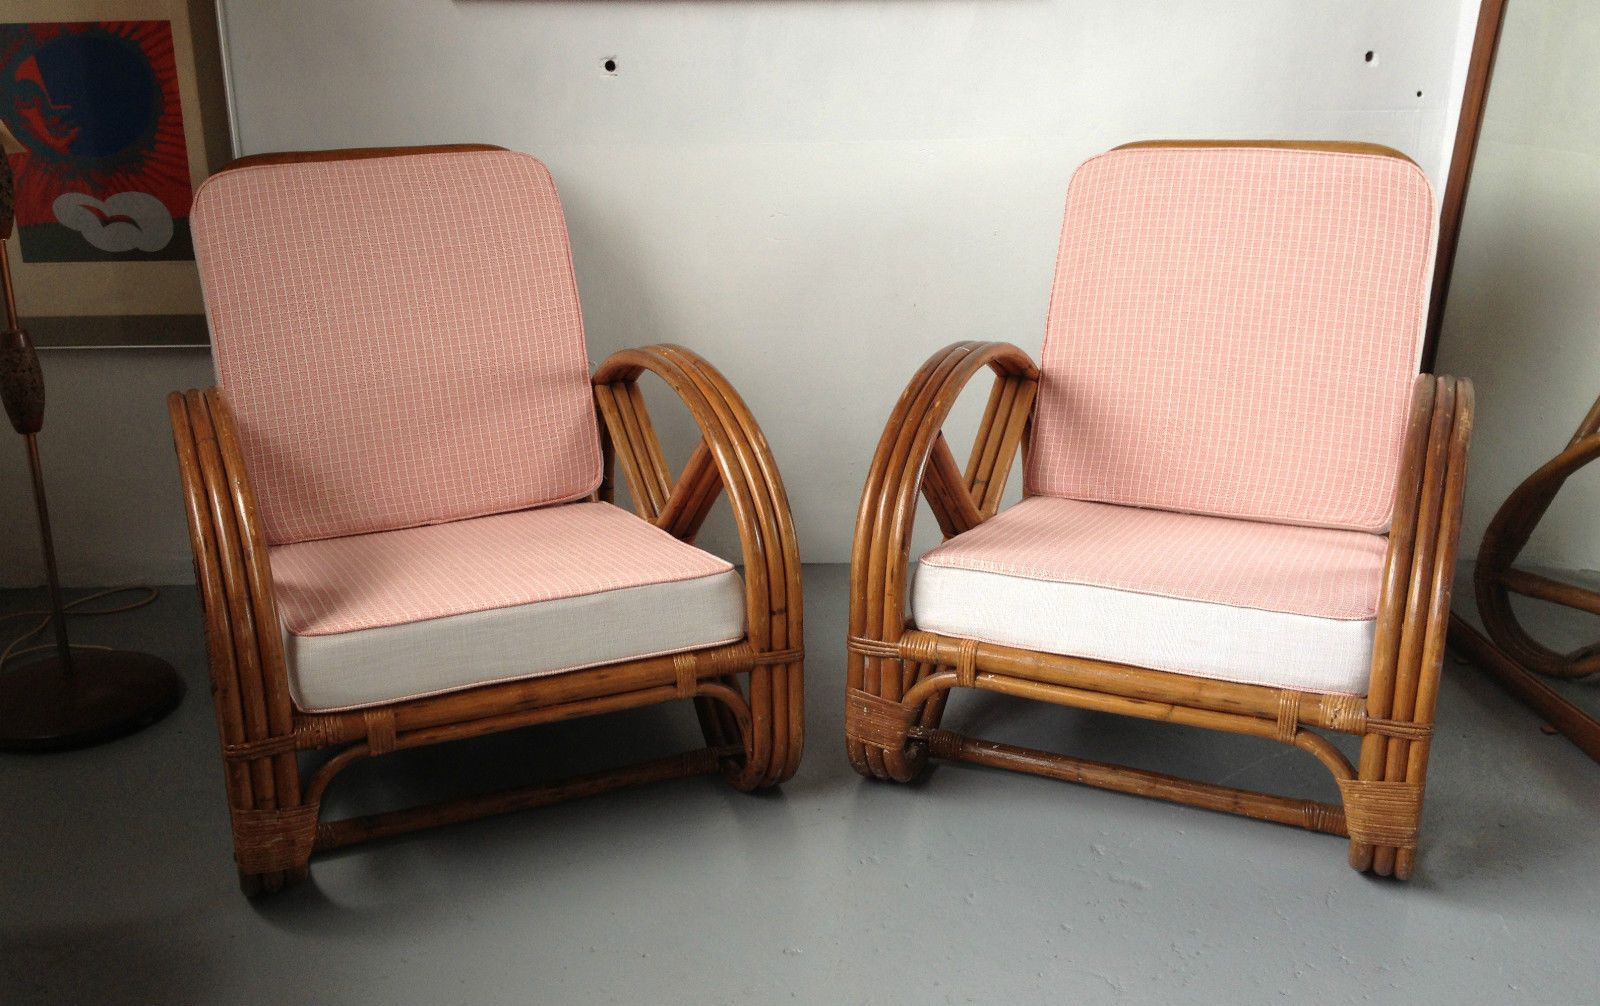 Cane Patio Pretzel Art Deco Chairs New Wool Upholstery